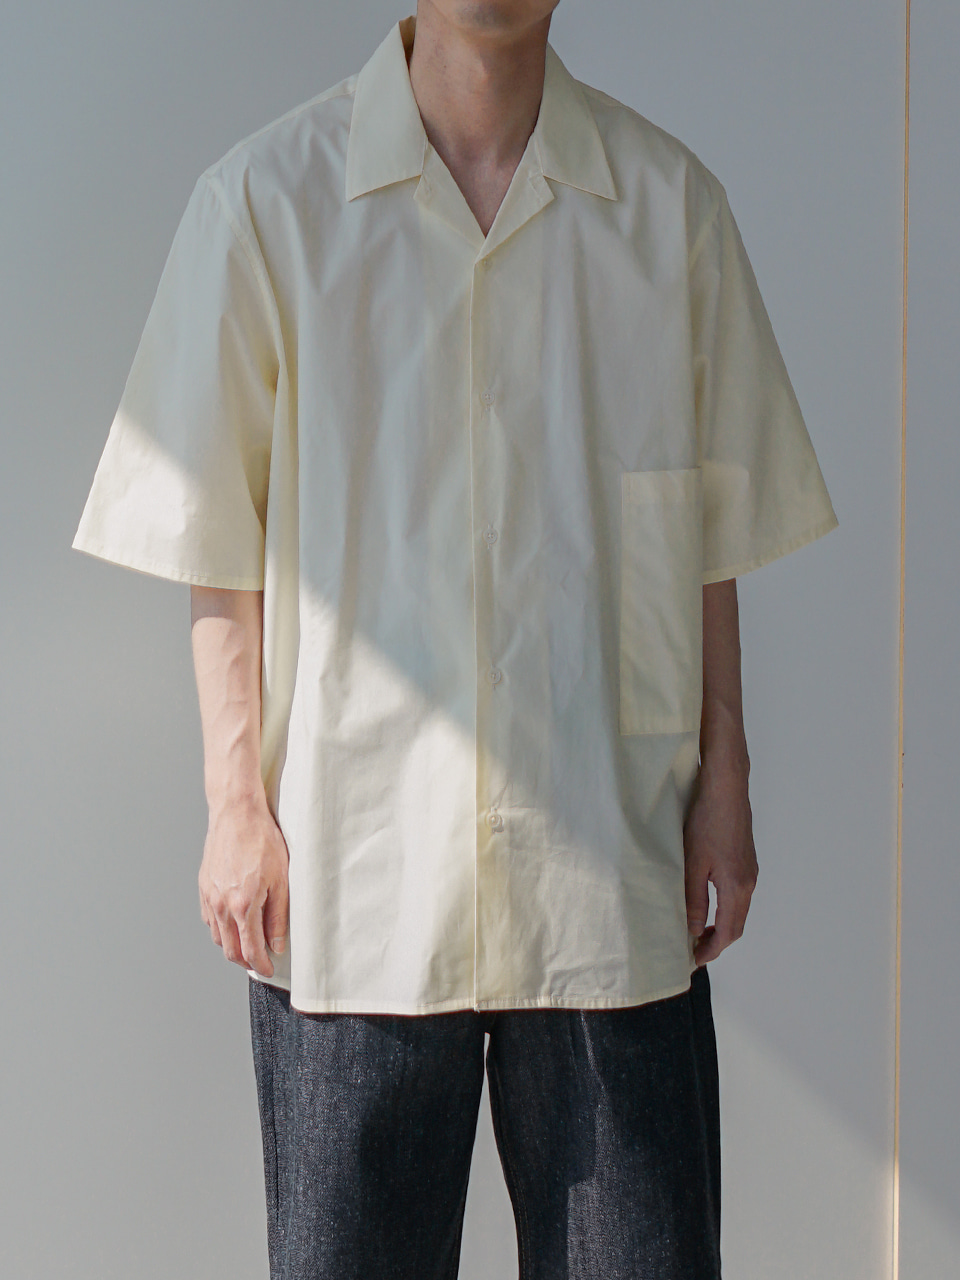 Nostalgia Open Collar Half Shirt (3color)